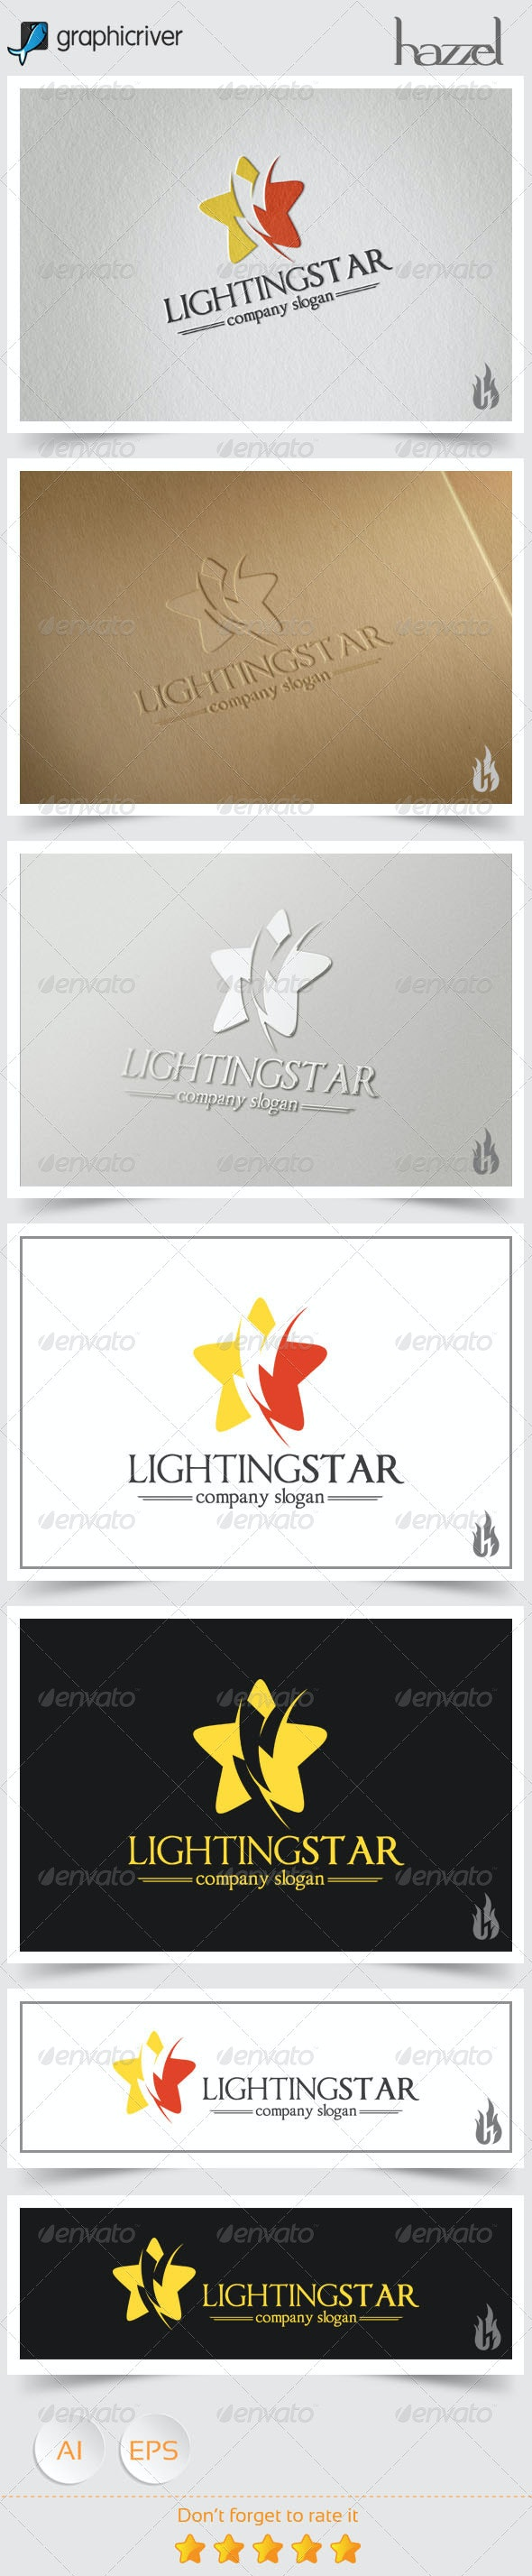 Lighting Star Logo - Nature Logo Templates